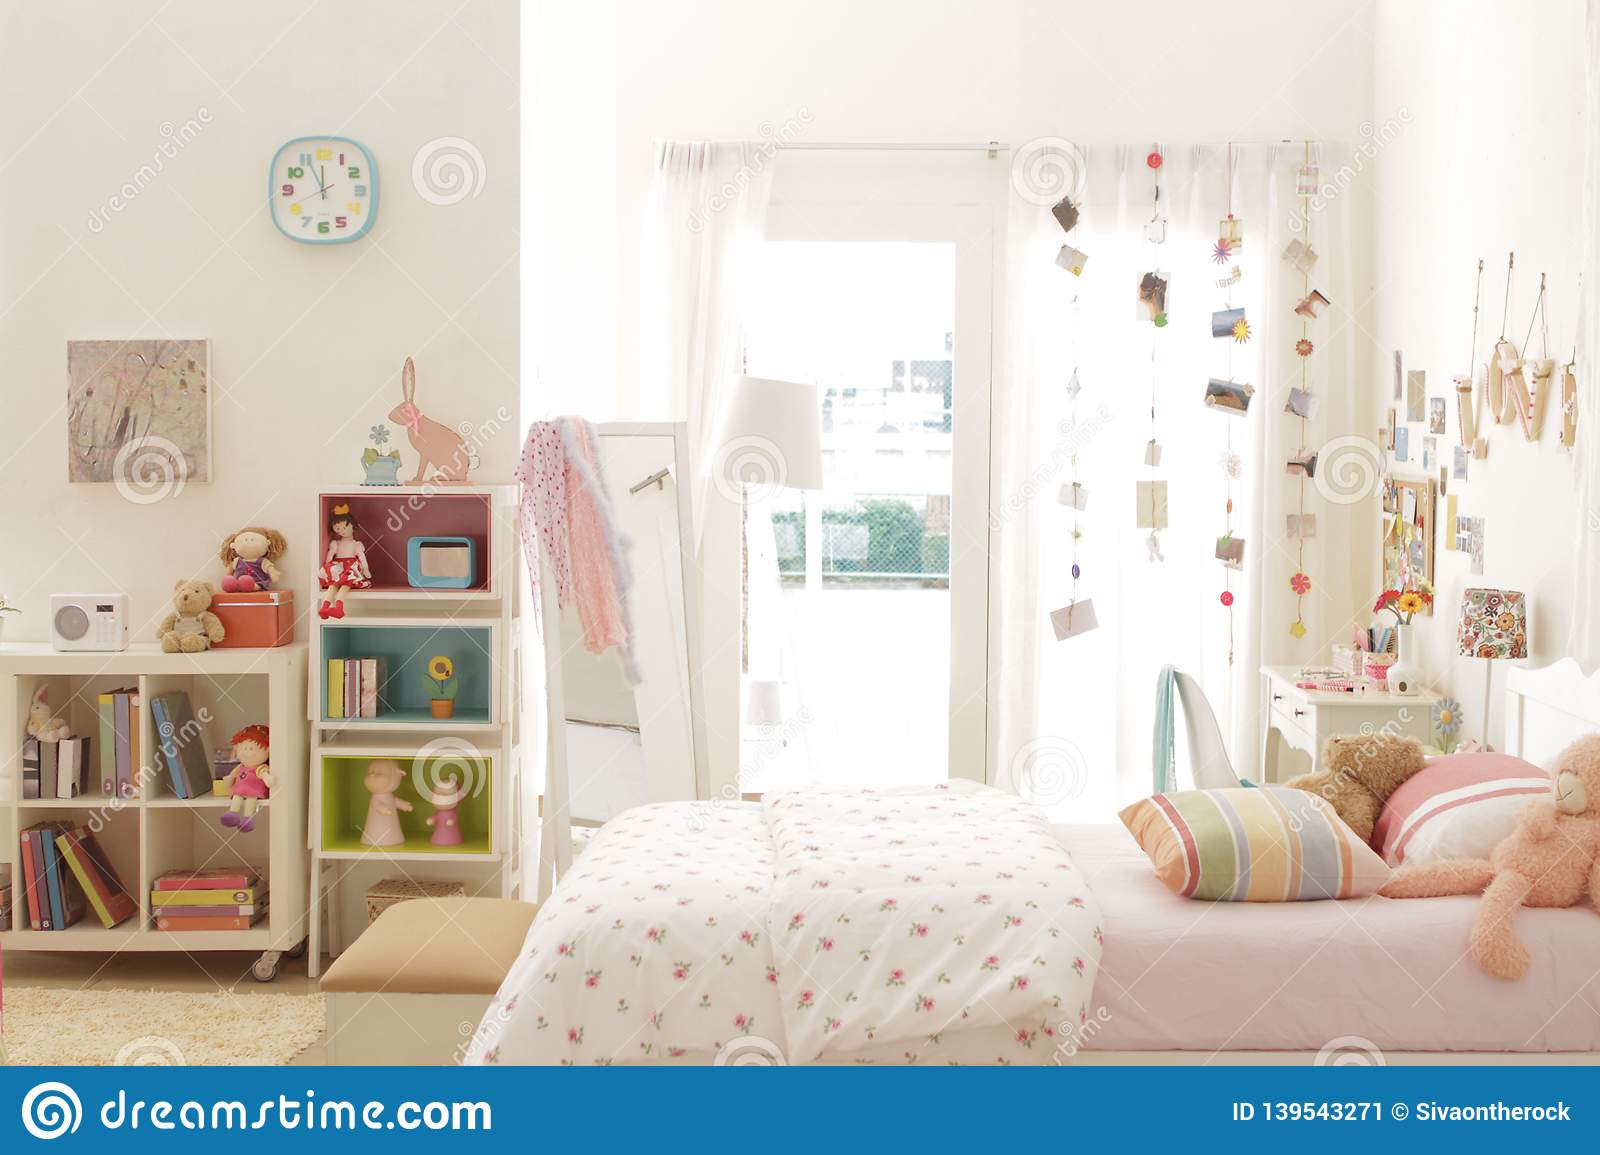 Cute Teen Girl Bedroom With Decoration 5 Stock Image - Image ...